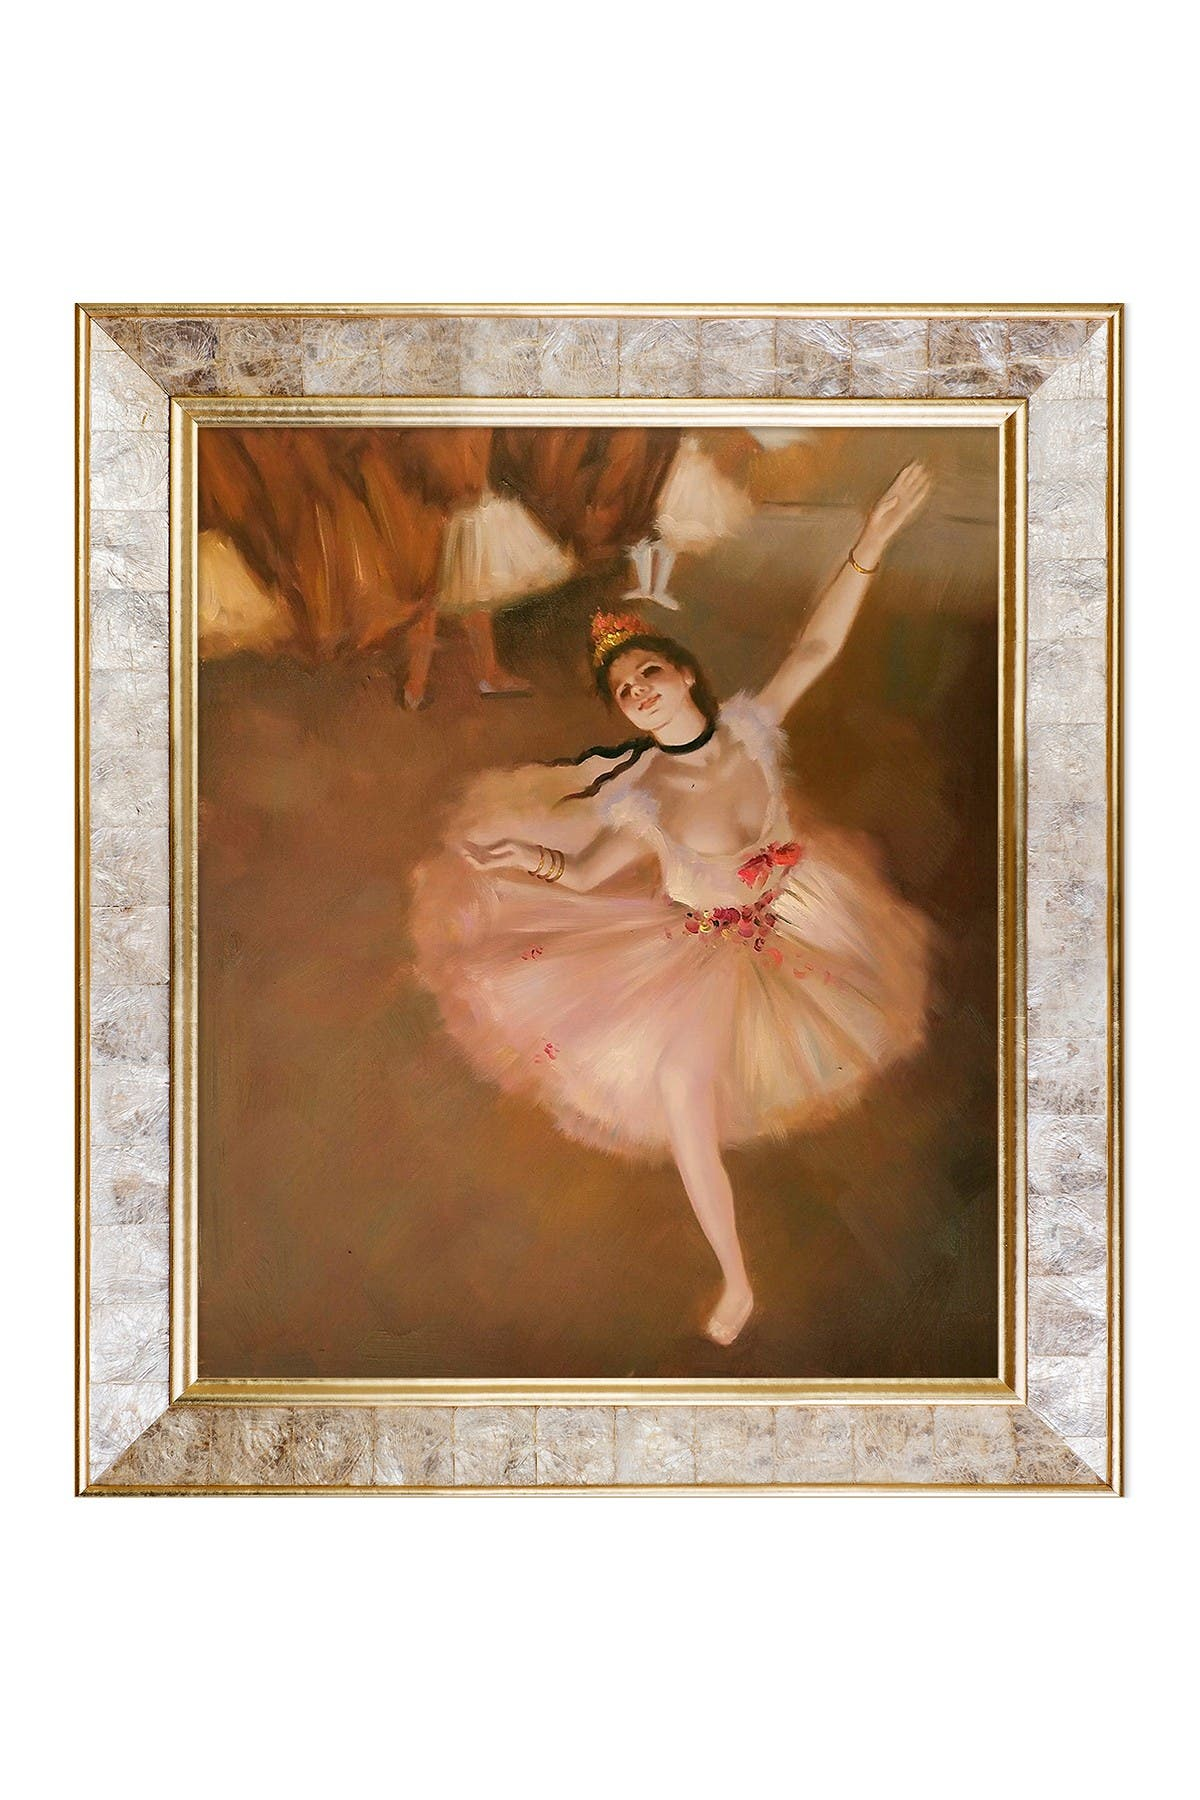 Image of Overstock Art Star Dancer (On Stage) by Edgar Degas Framed Hand Painted Oil Reproduction